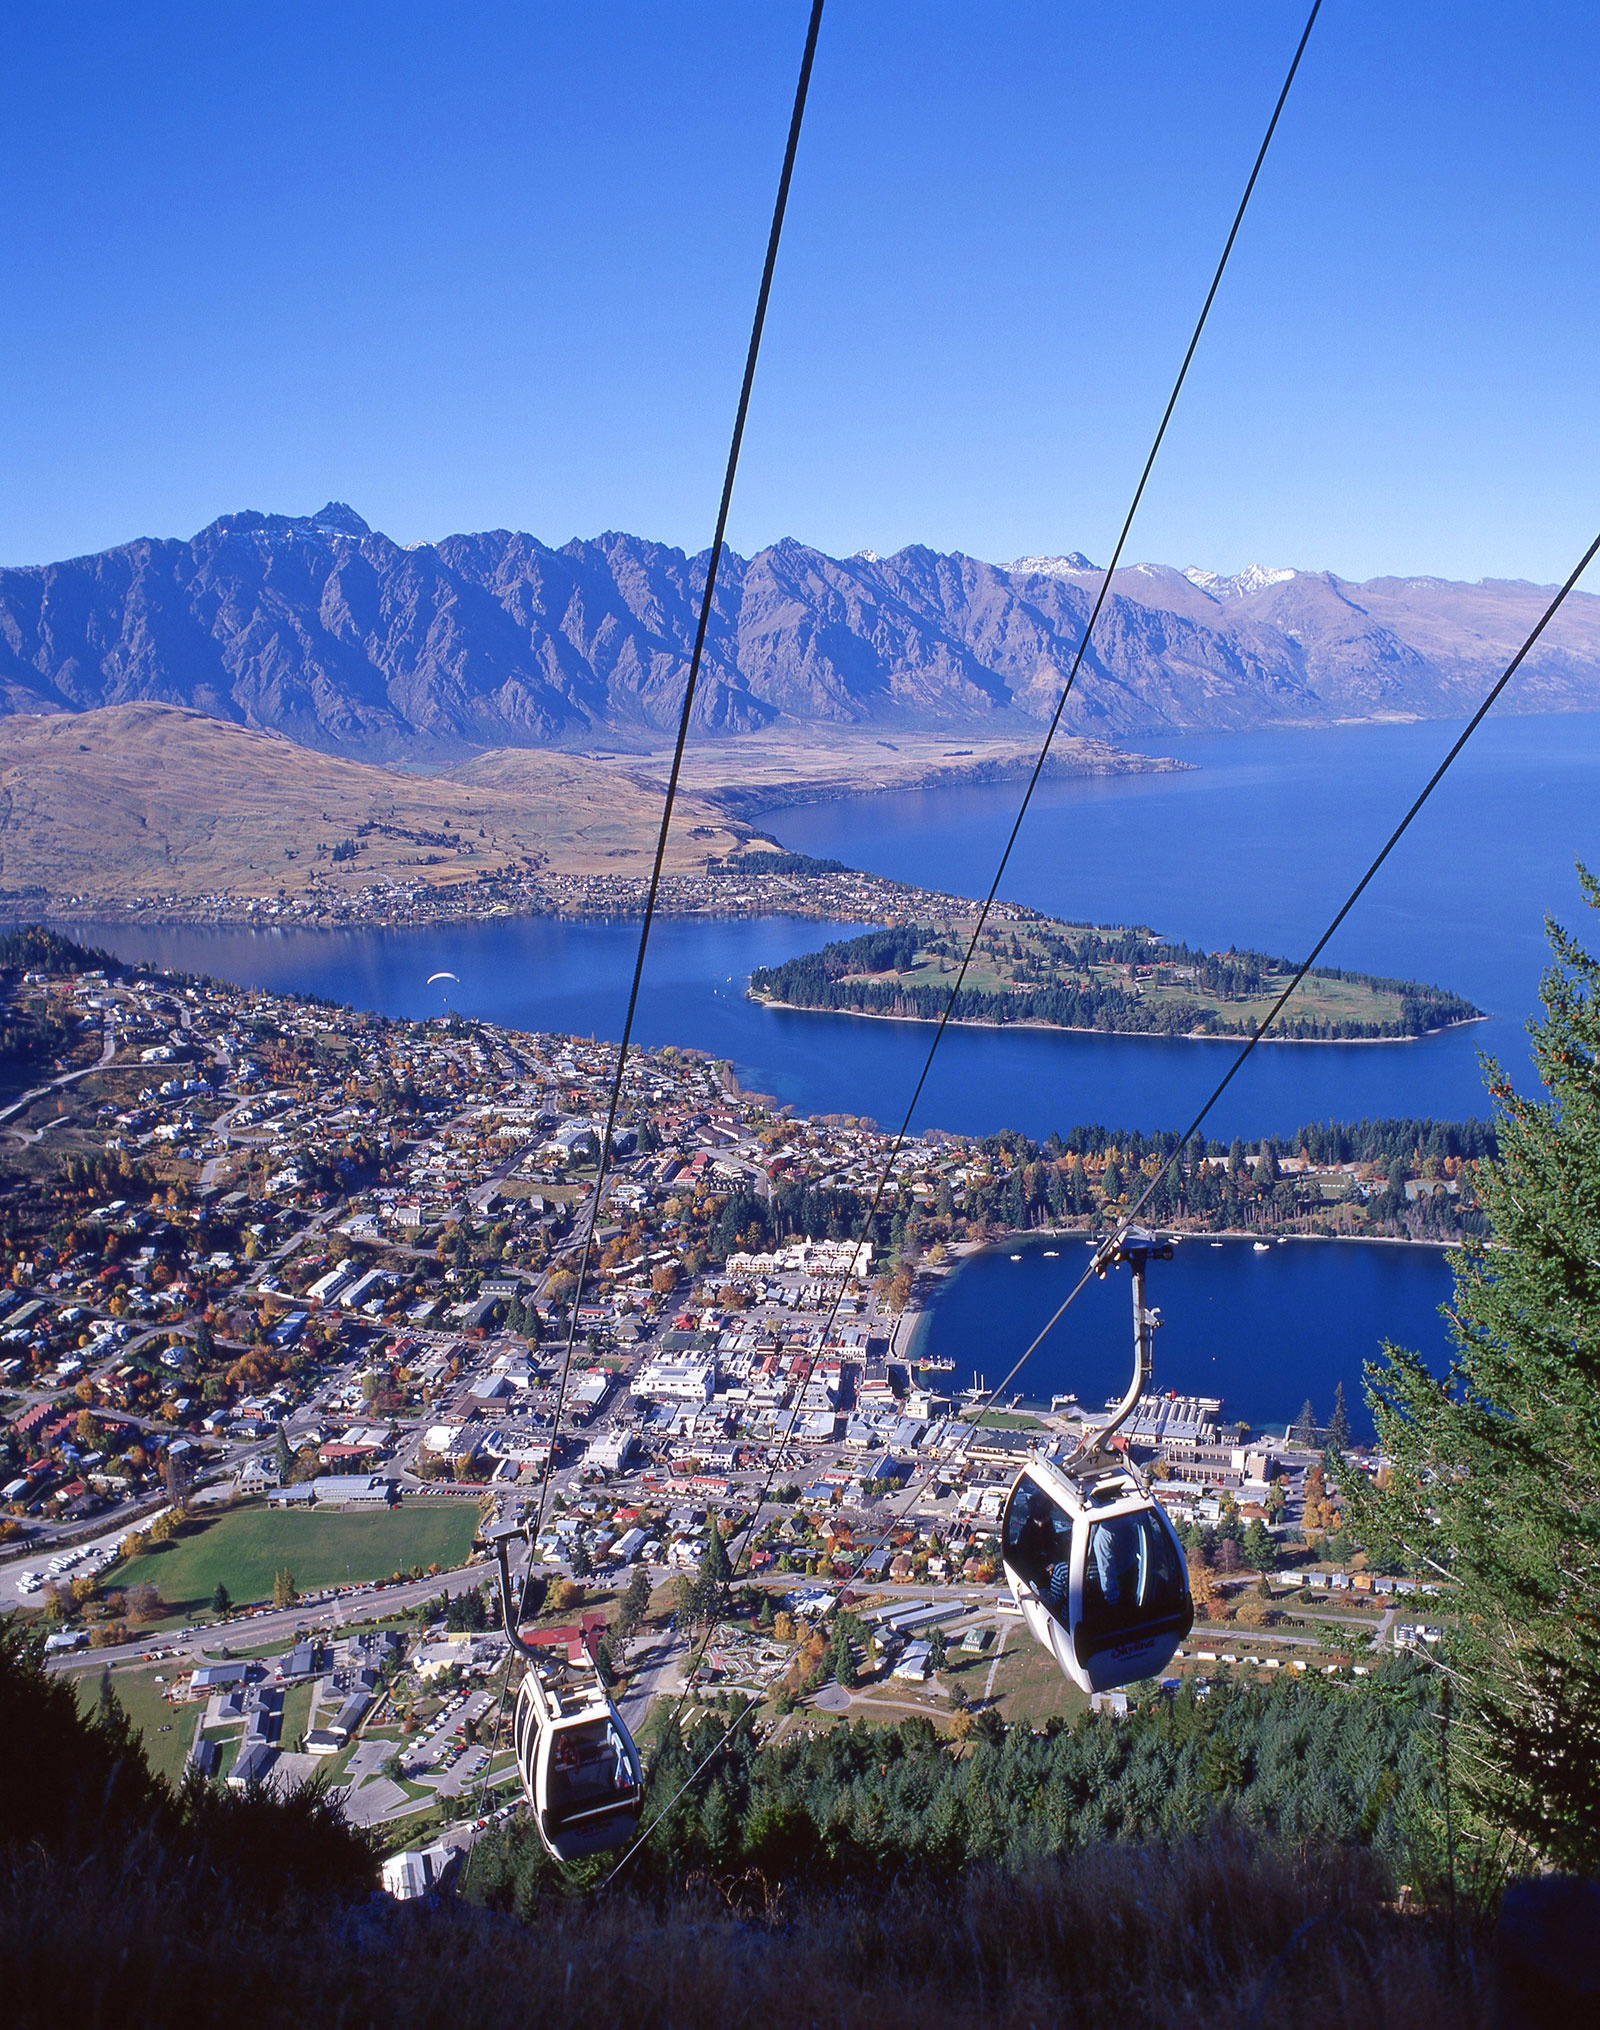 Skyline Gondola, Queenstown, New Zealand